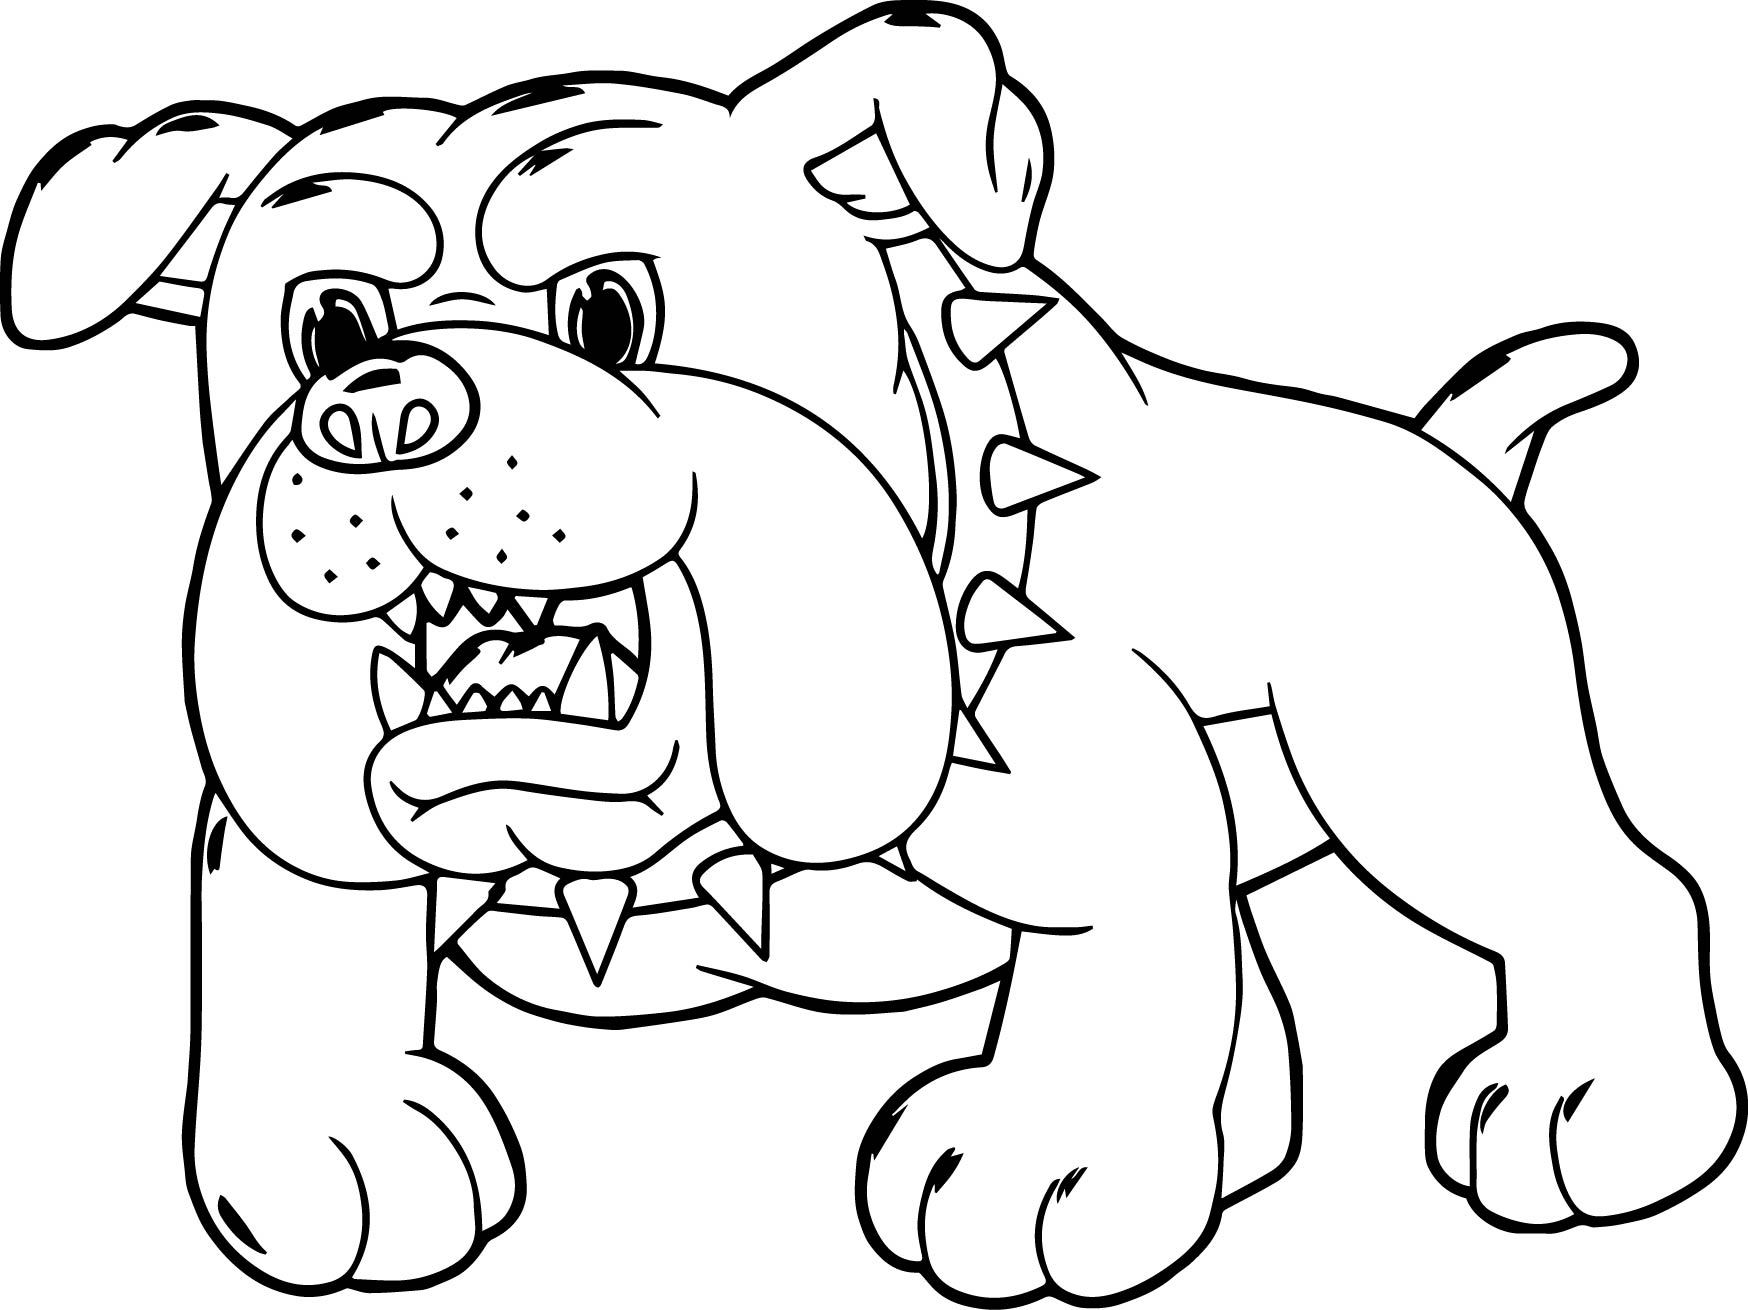 1748x1310 Amazing Angry Dog Cartoon Puppy Coloring Page Wecoloringpage